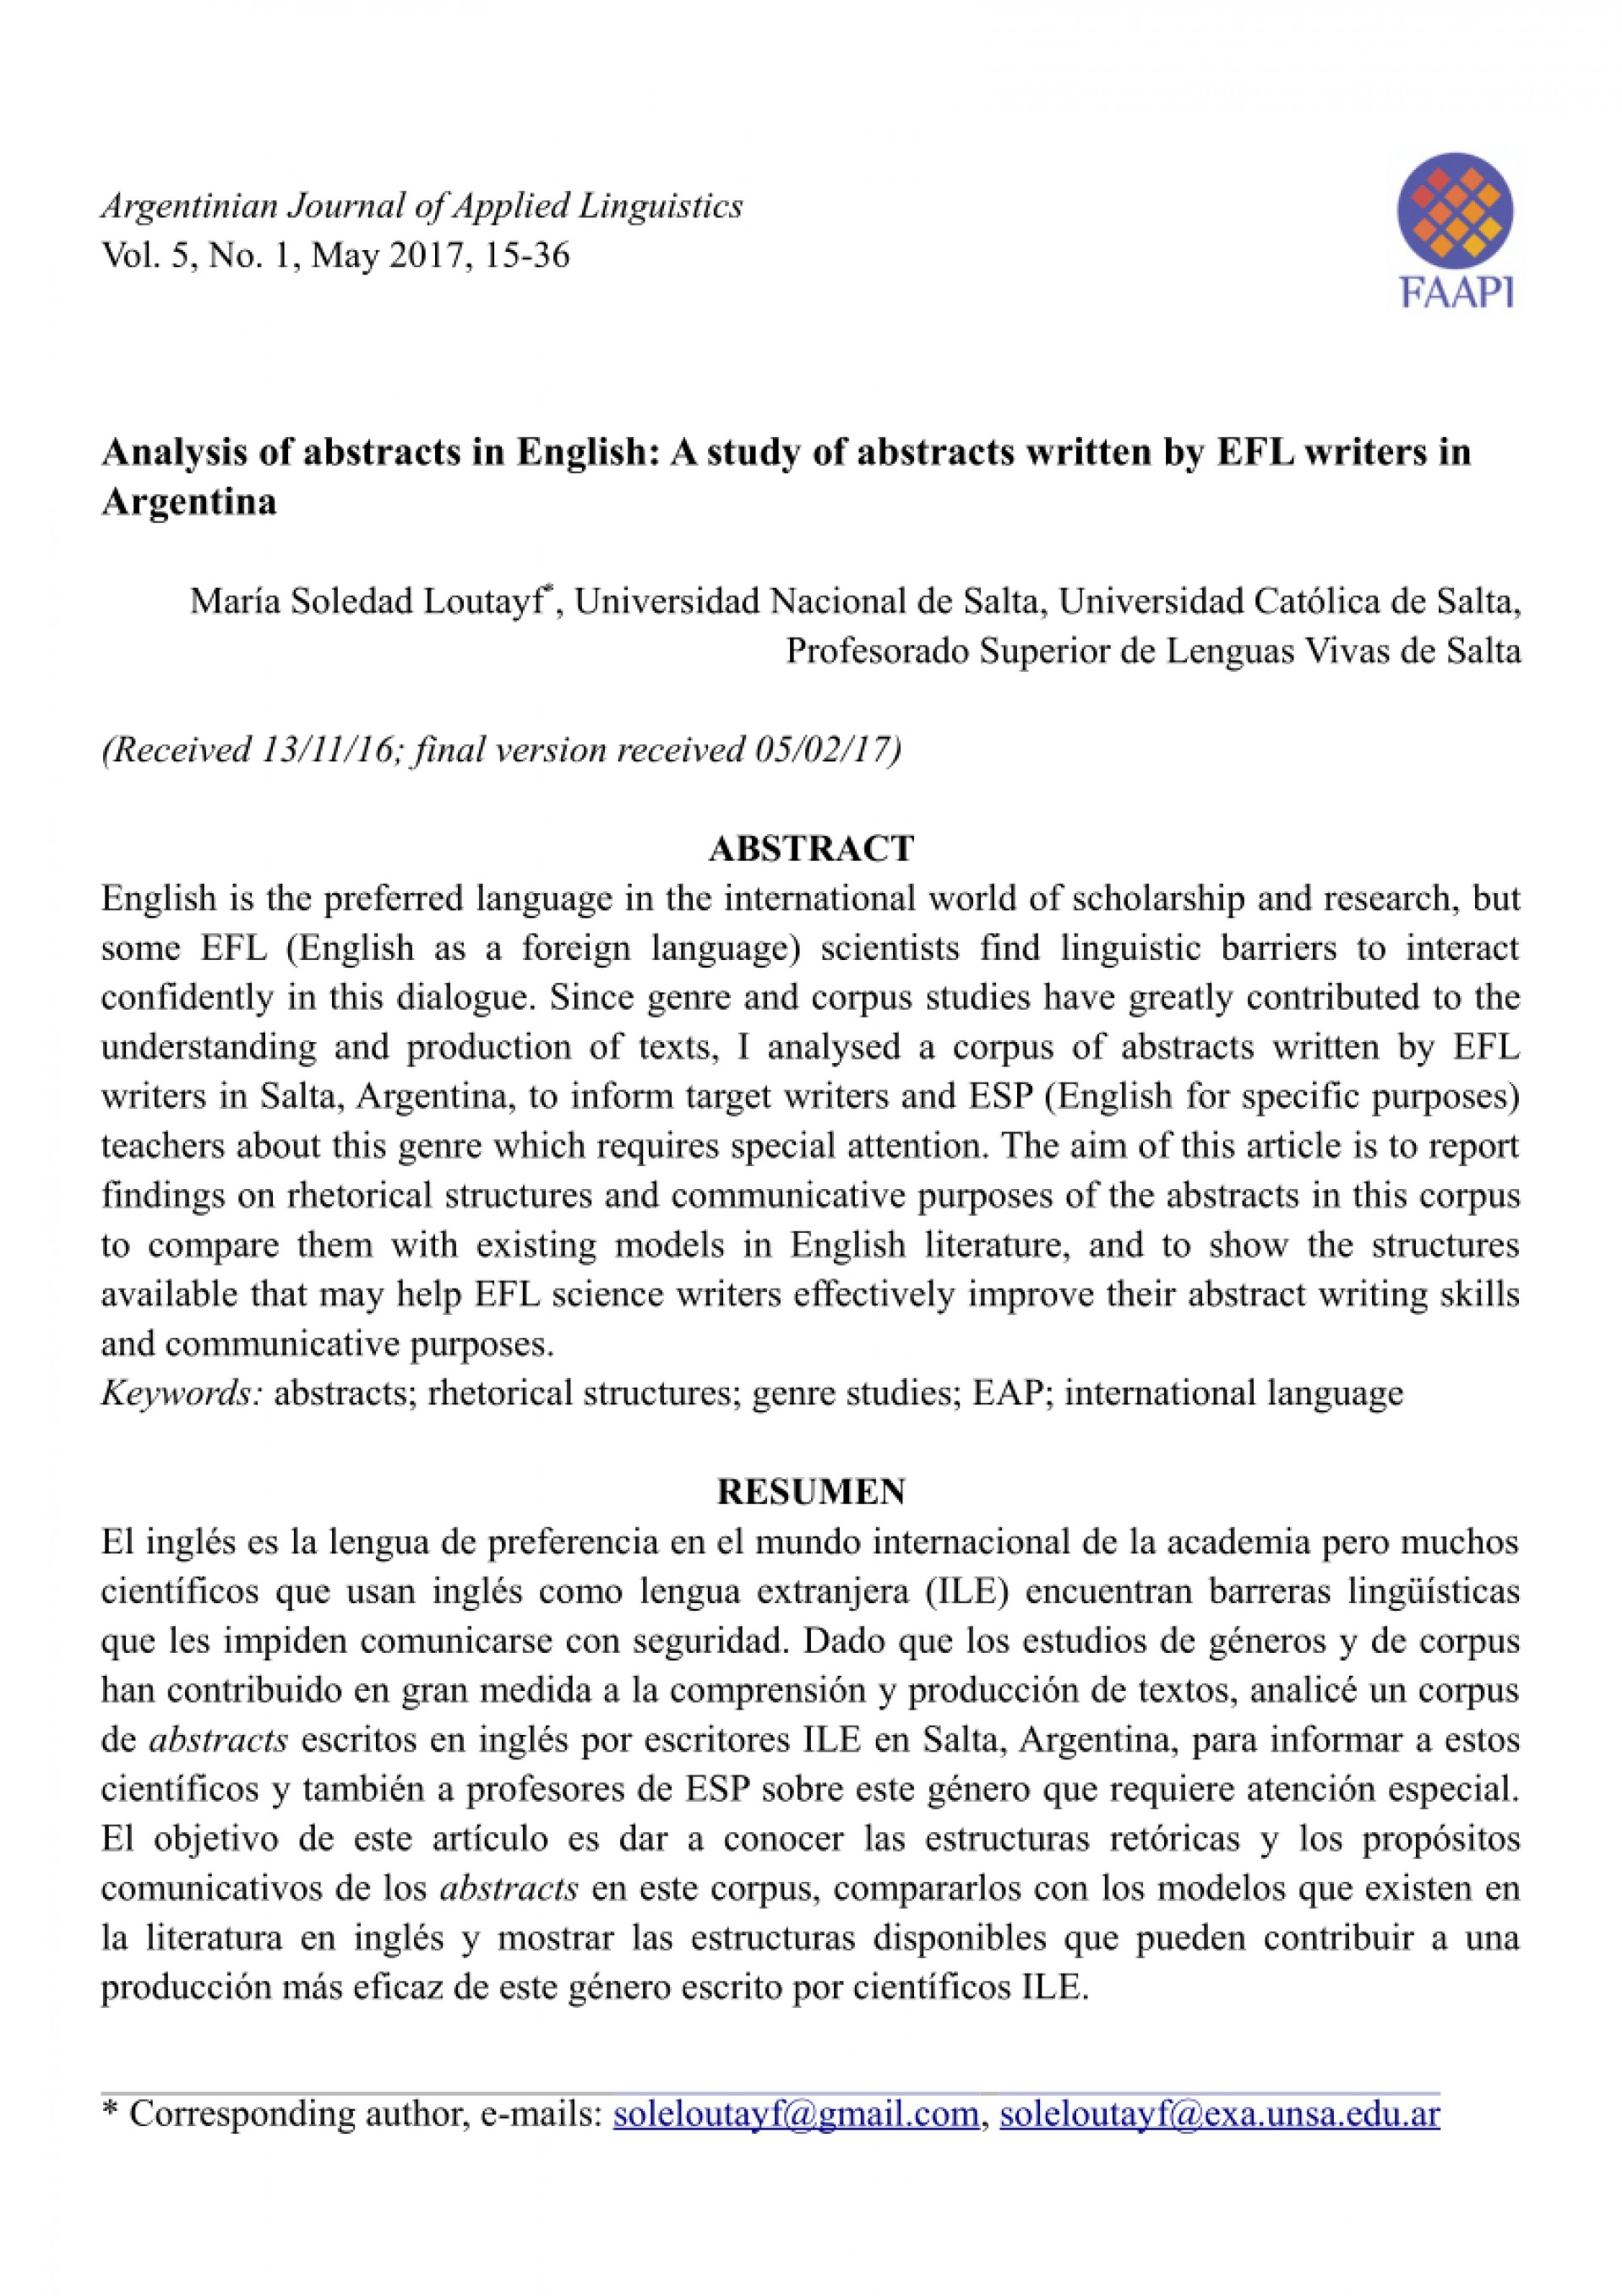 003 Largepreview English For Writing Researchs Adrian Wallwork Pdf Marvelous Research Papers 2011 1920